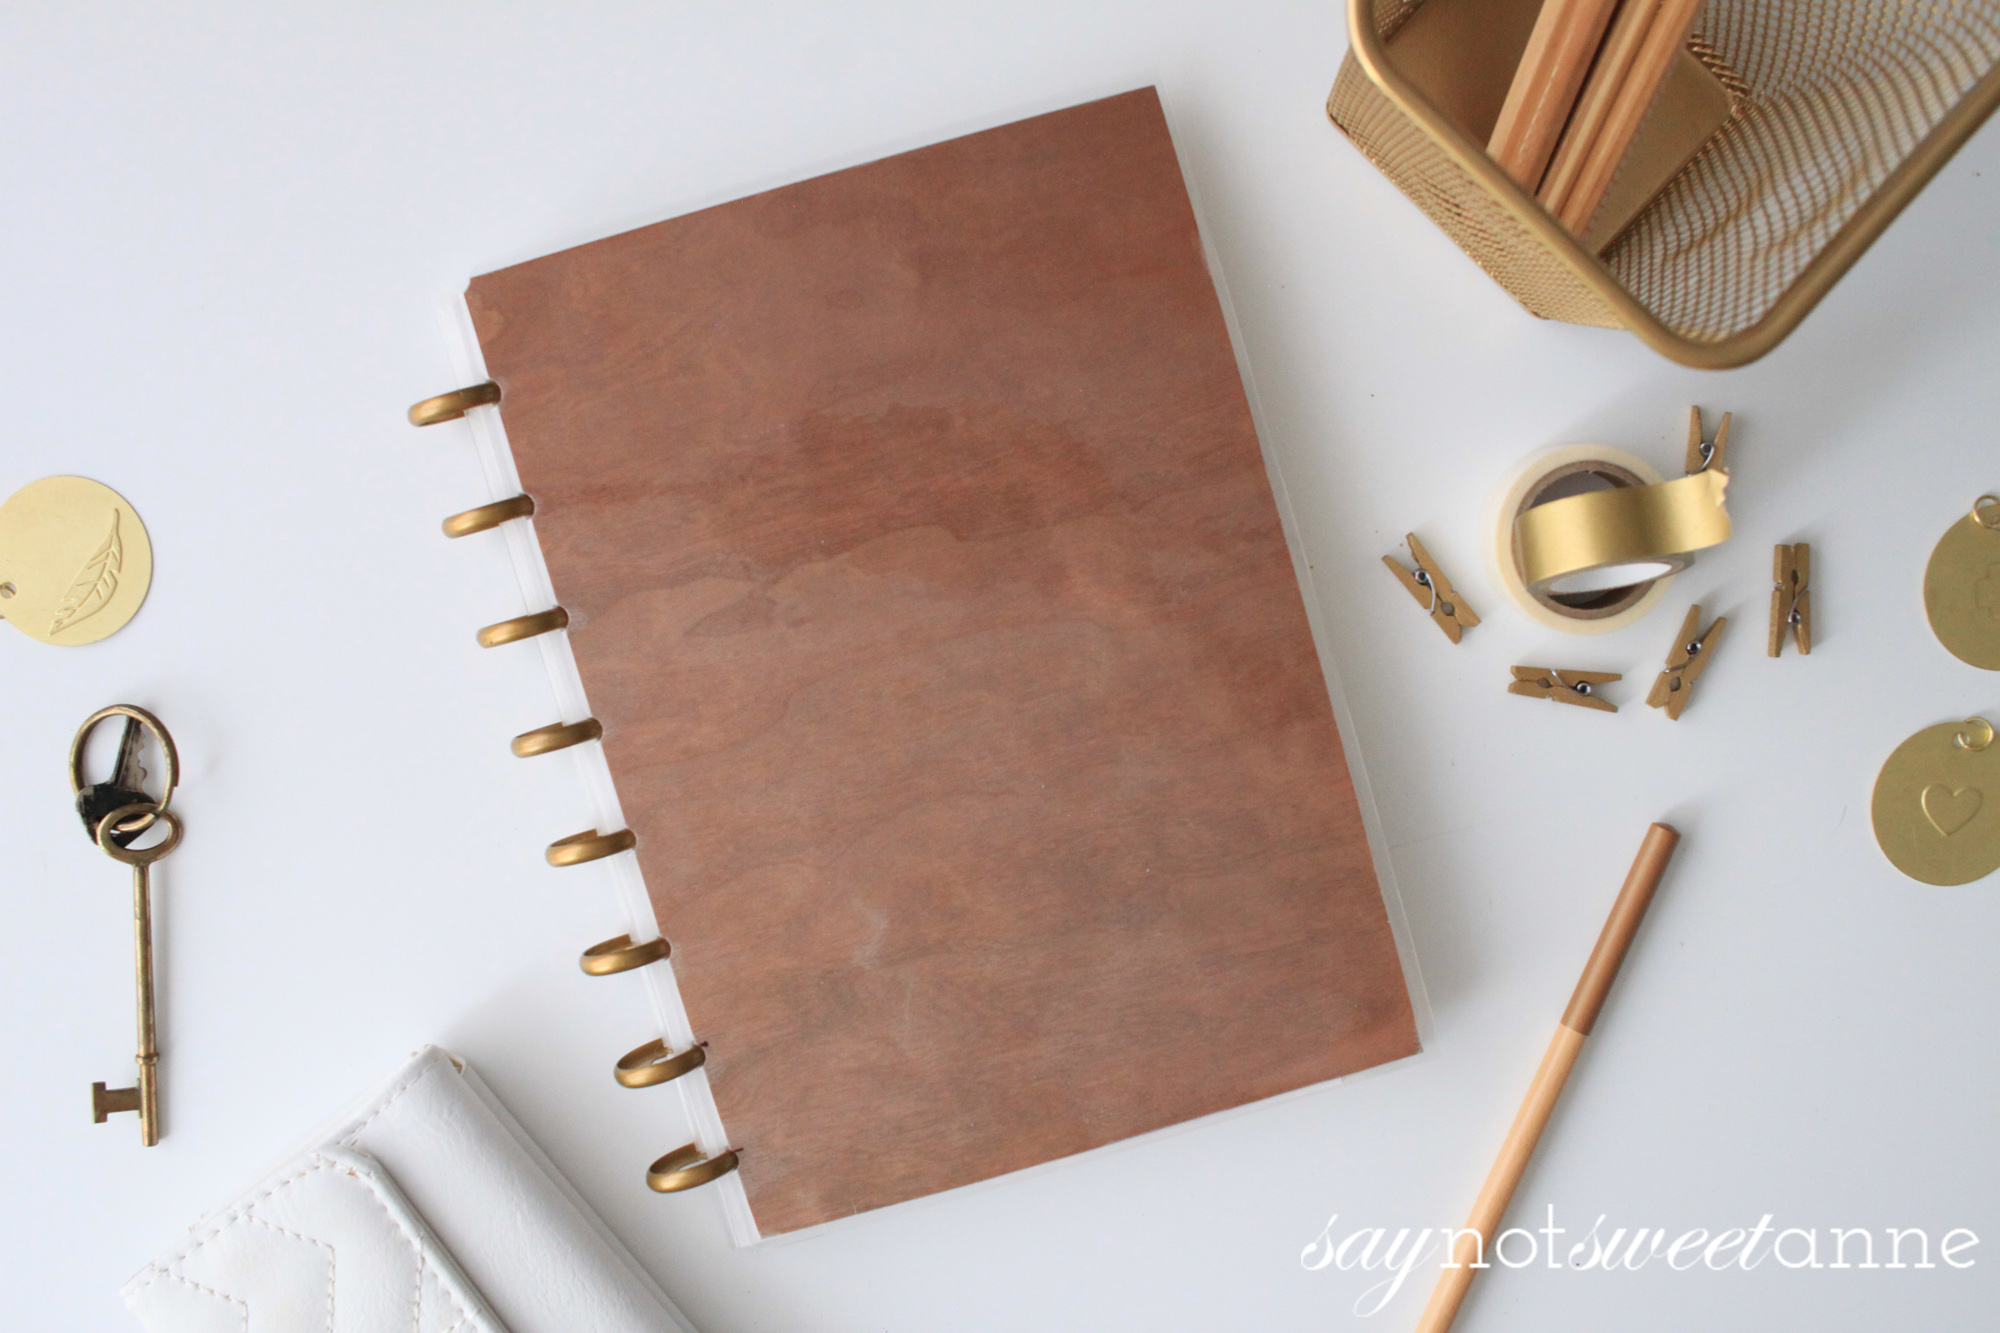 Make your own custom covers for pennies, and without proprietary kits! Perfect for Martha Stewart, Tul, Arc, Create 365 MAMBI Happy Planners, IQ 360, and Levenger Circa brands!   Saynotsweetanne.com